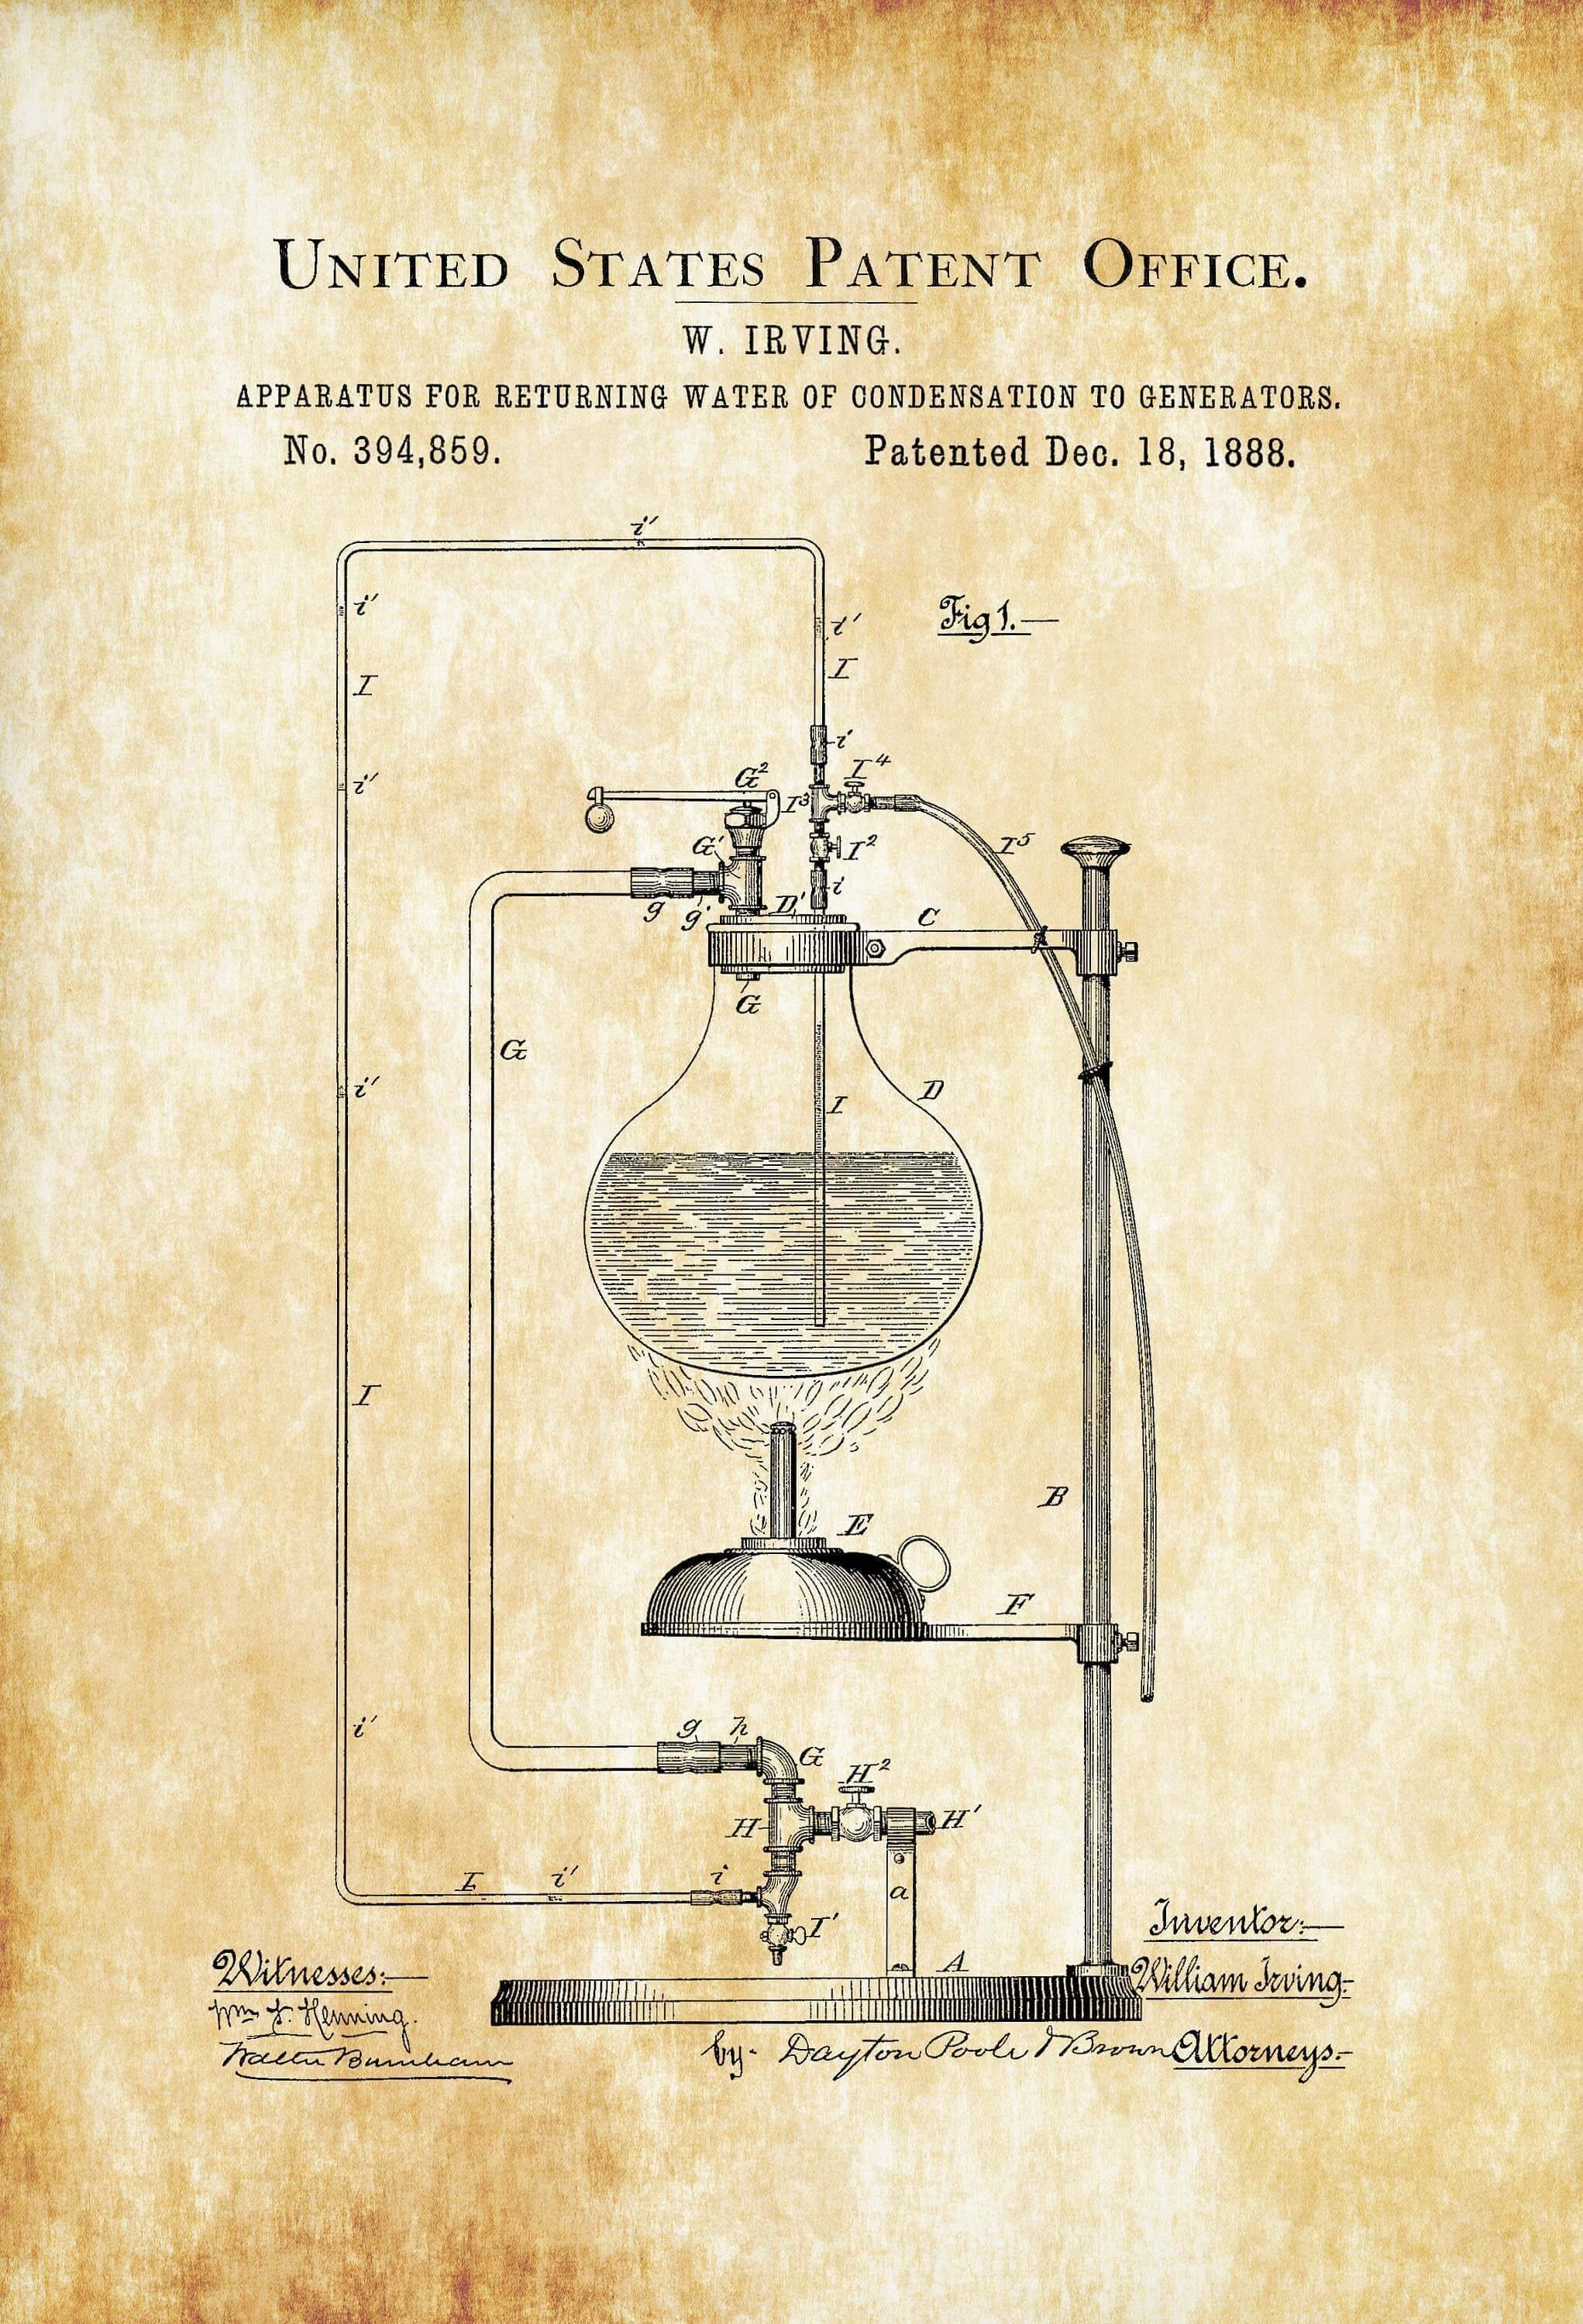 Cold Air Pressure Apparatus For Beer Brewing Patent Print Poster Unframed